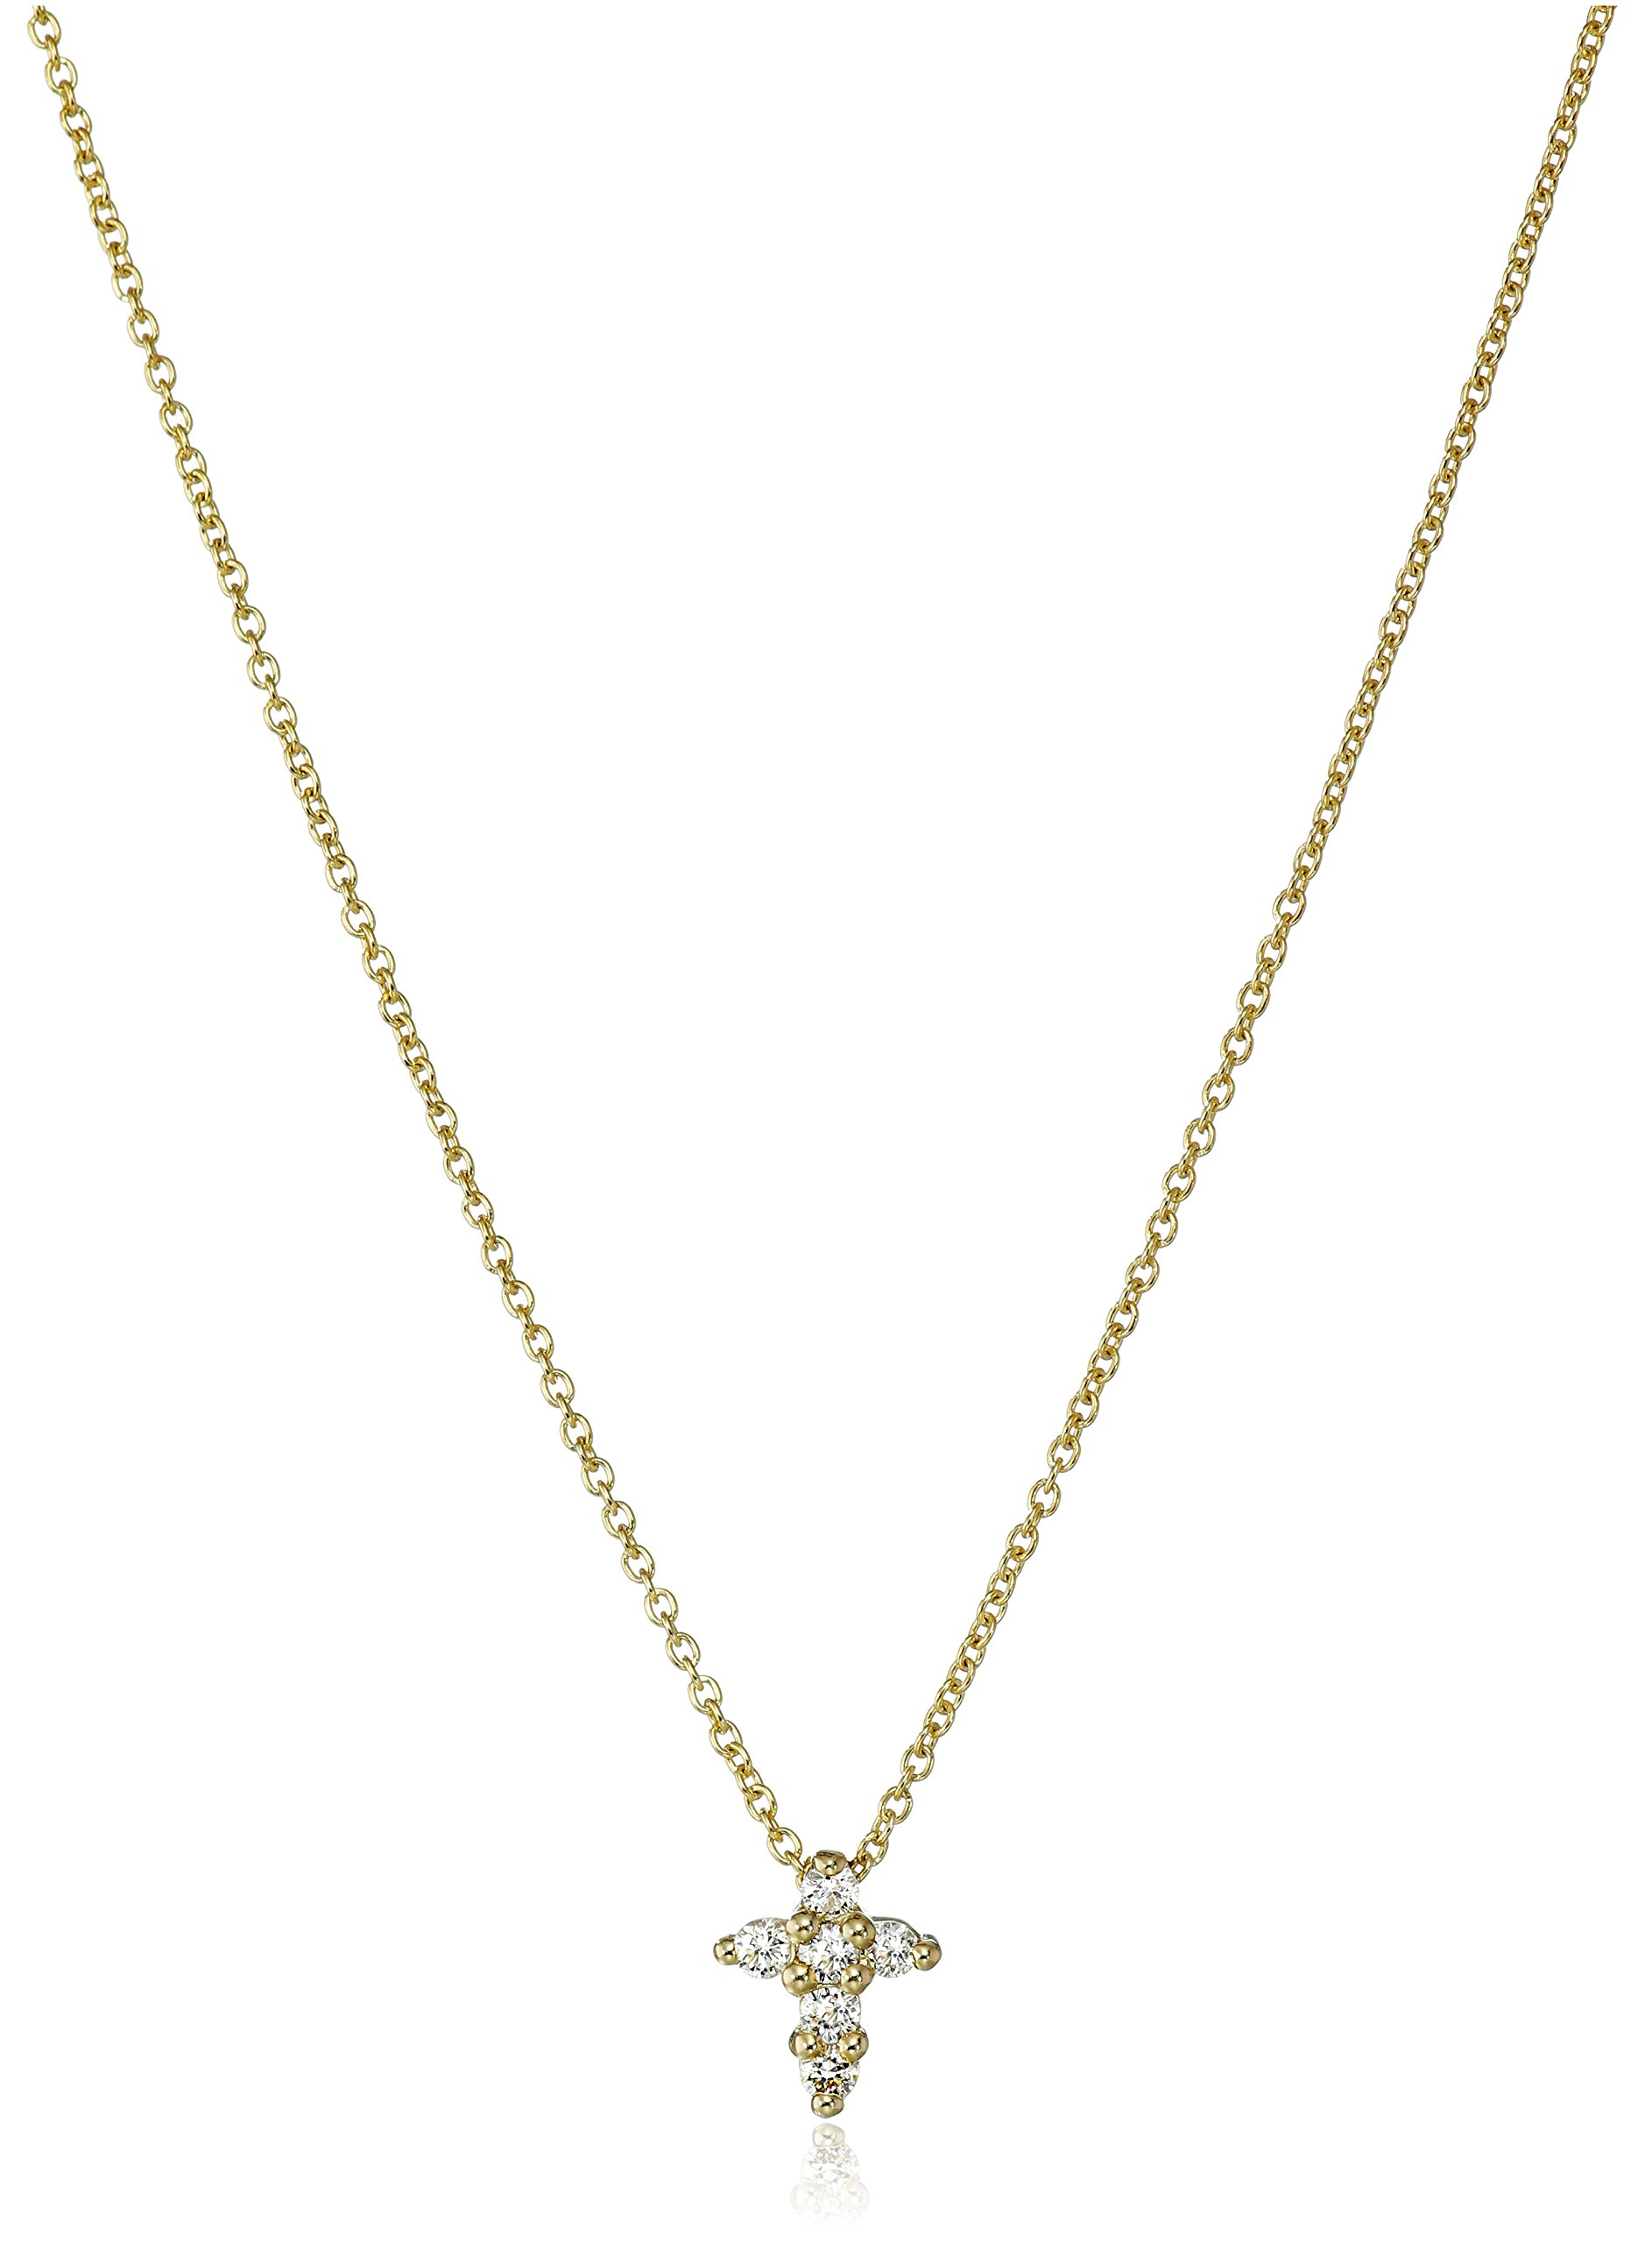 Roberto Coin ''Tiny Treasures'' 18k Yellow Gold Diamond Baby Cross Pendant Necklace (1/10cttw, G-H Color, SI1 Clarity)